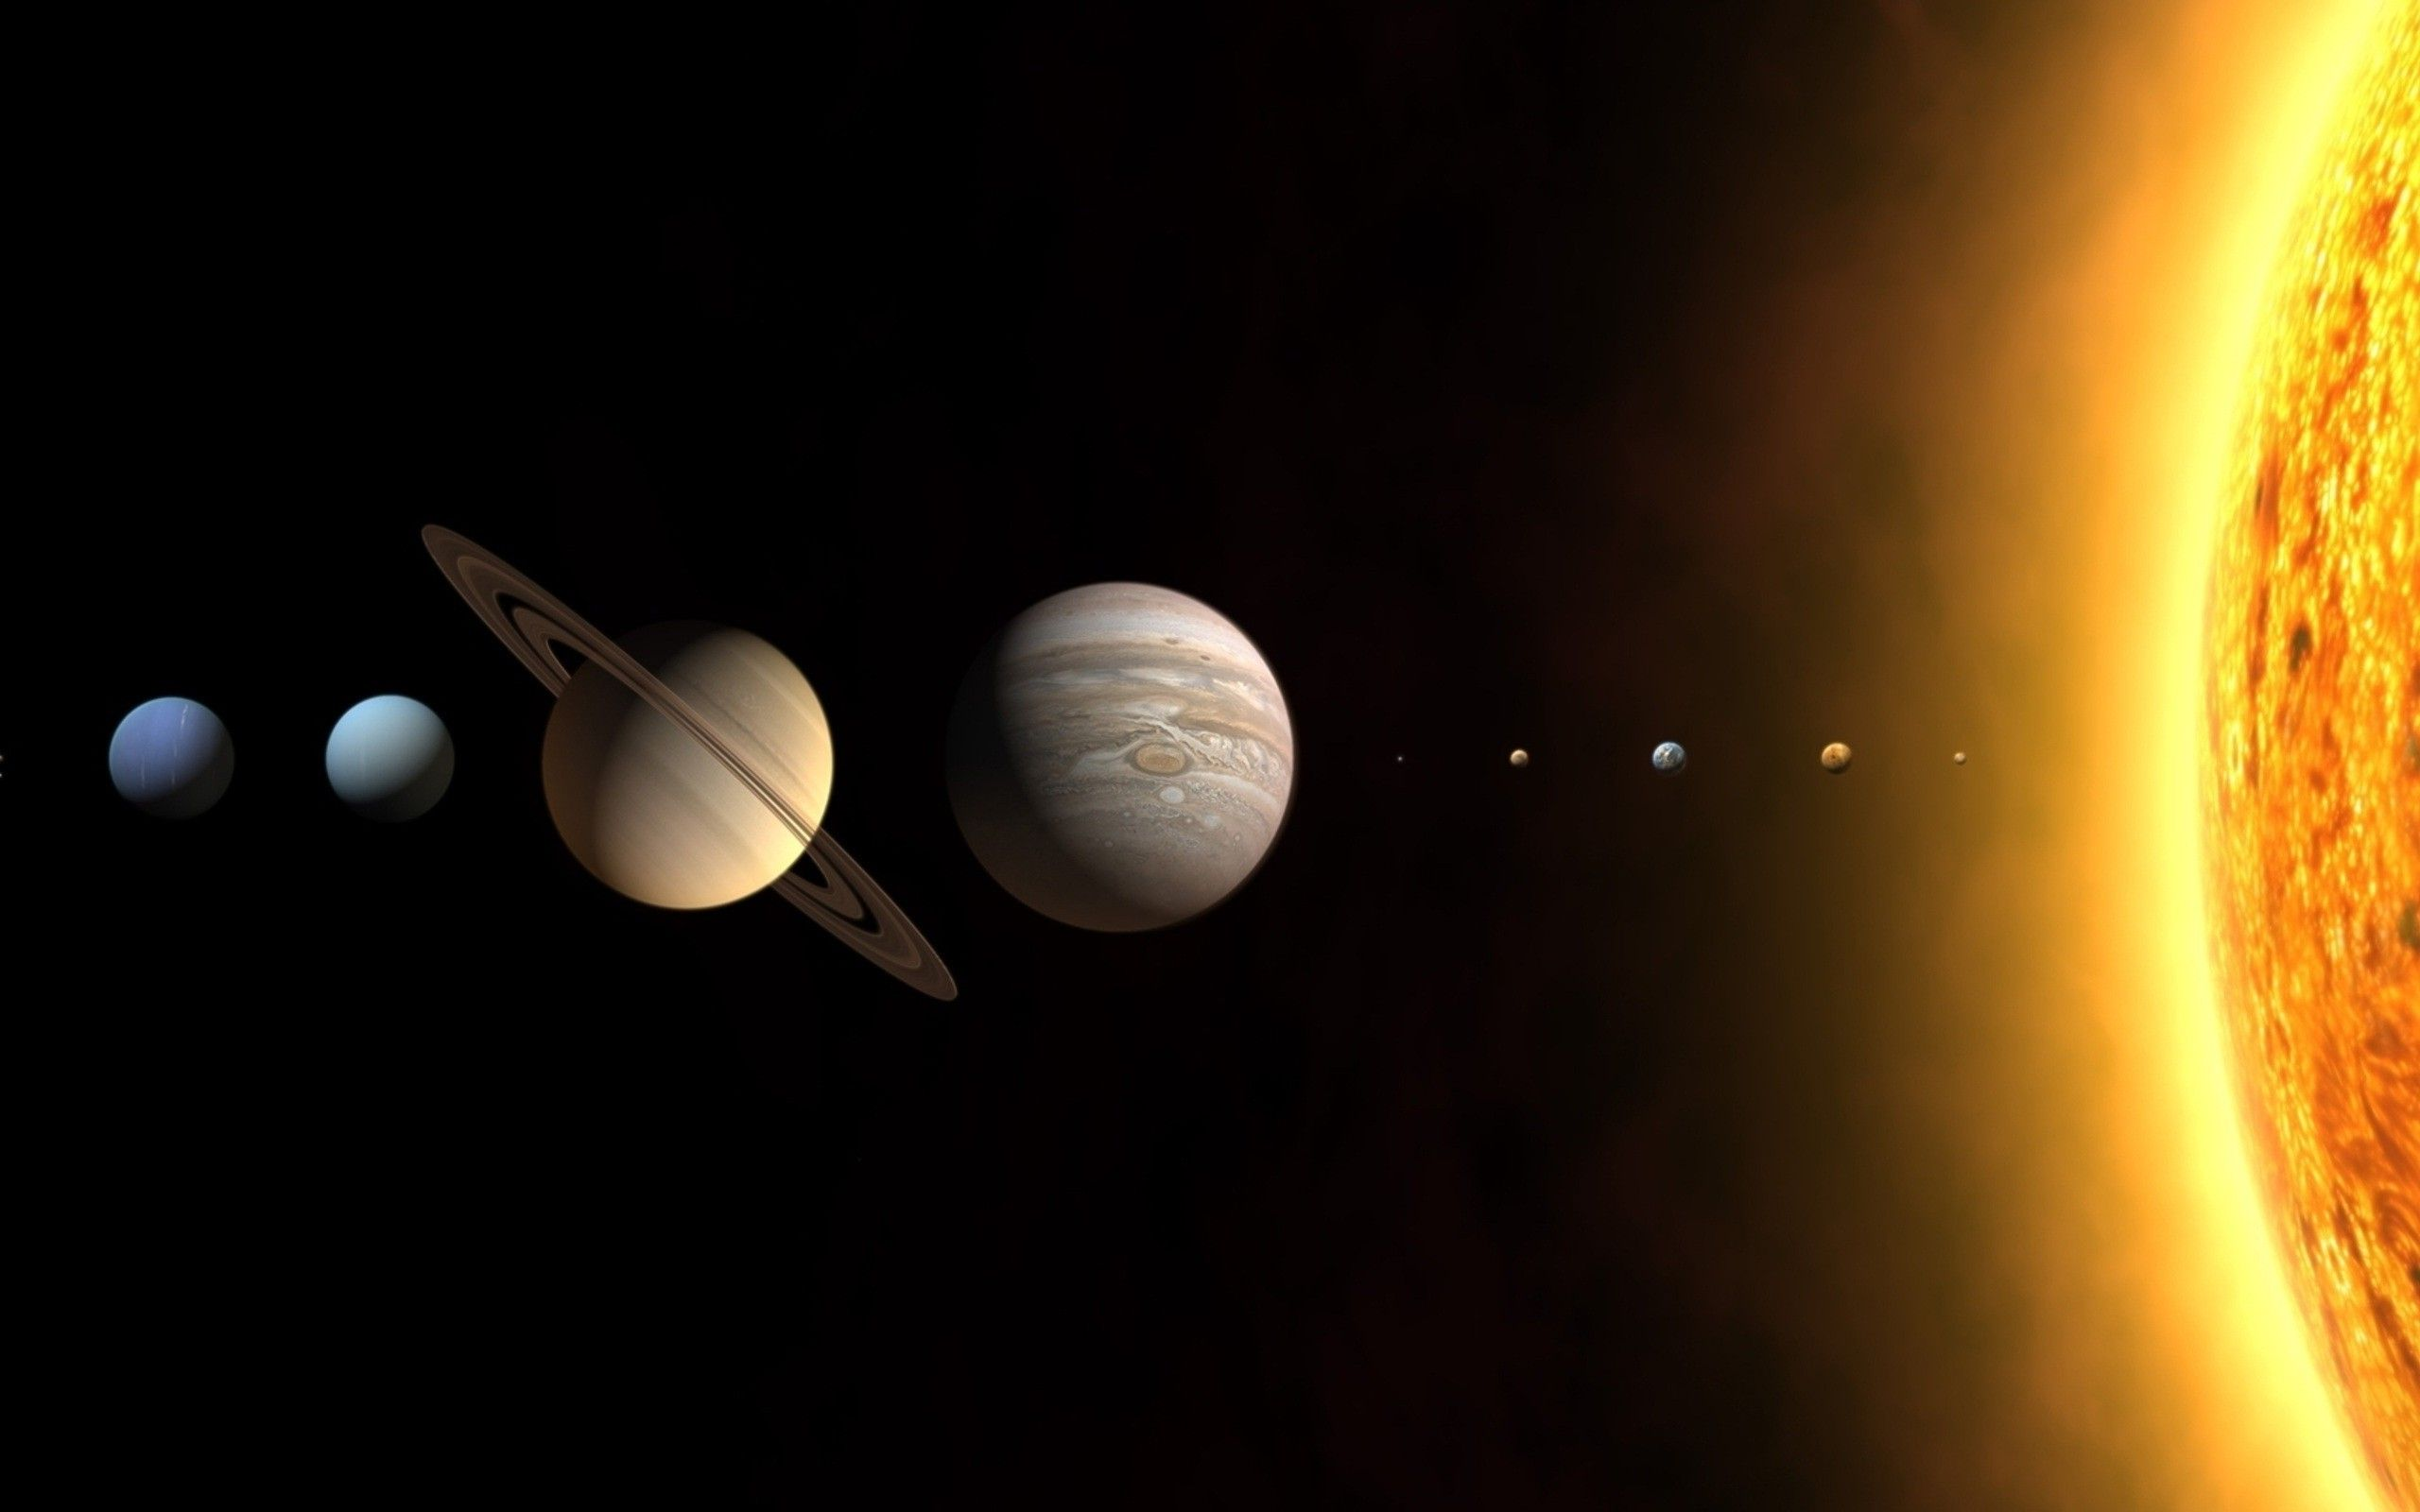 planets solar system wallpaper 1920x1200 - photo #17